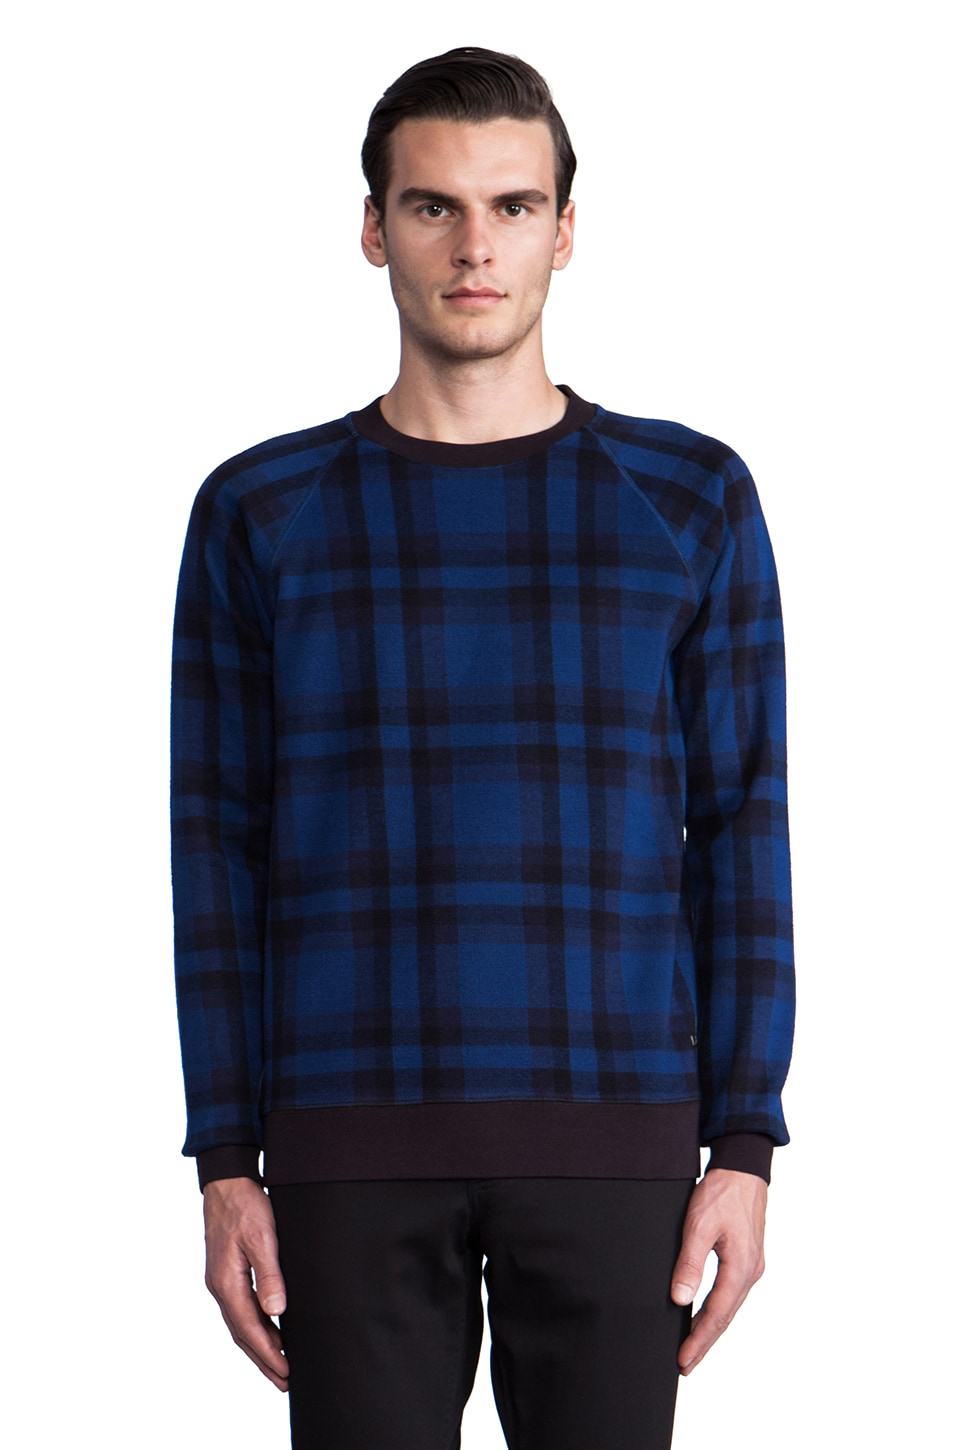 Marc by Marc Jacobs Sheffield Plaid Sweatshirt en Icelandic Blue Multi